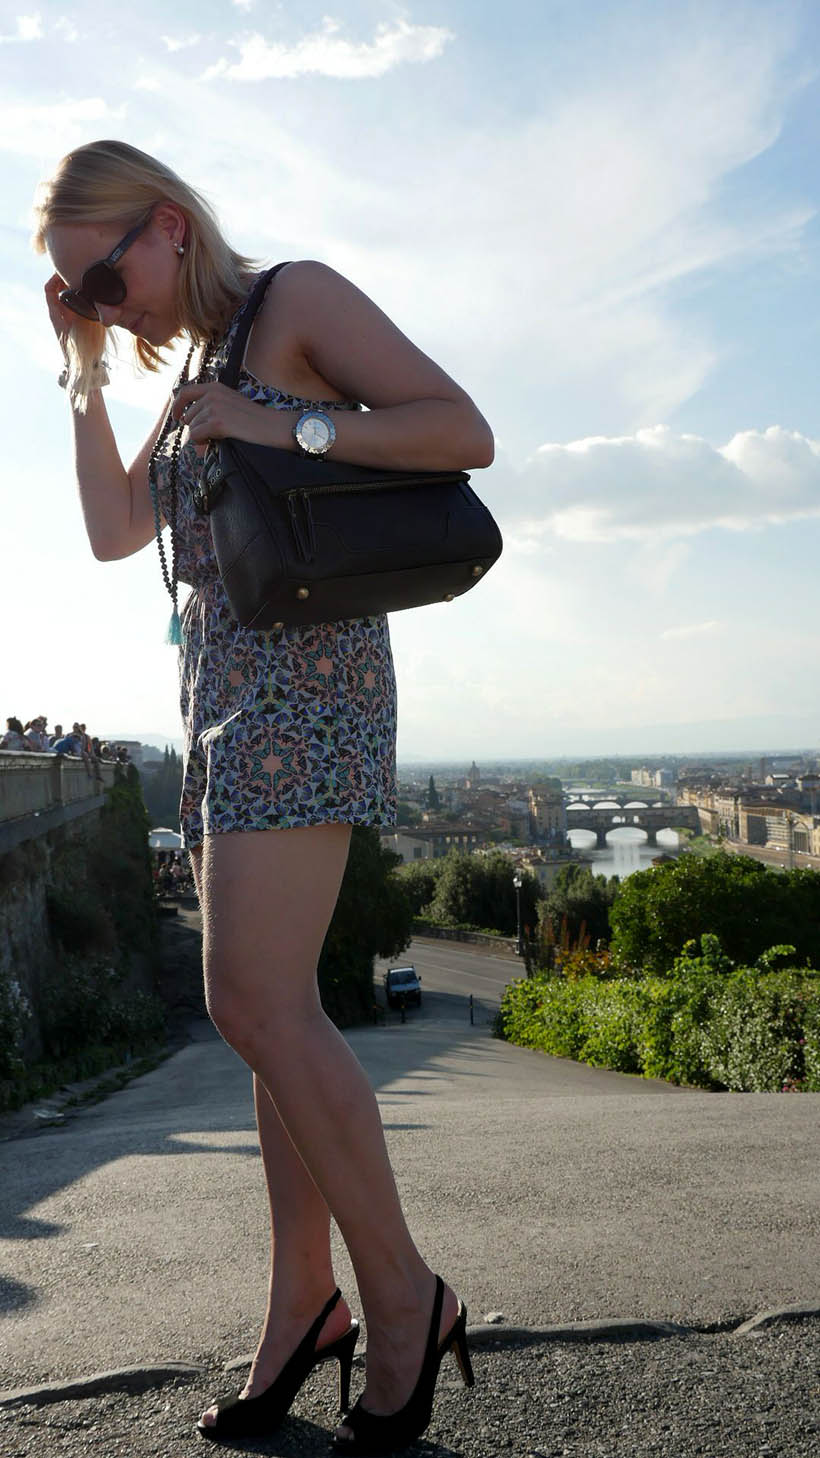 free-as-a-butterfly-outfit-fashion-ootd-blog-sarandipity-playsuit-firenze-italia-italy-moda-ilovefashionbloggers-8